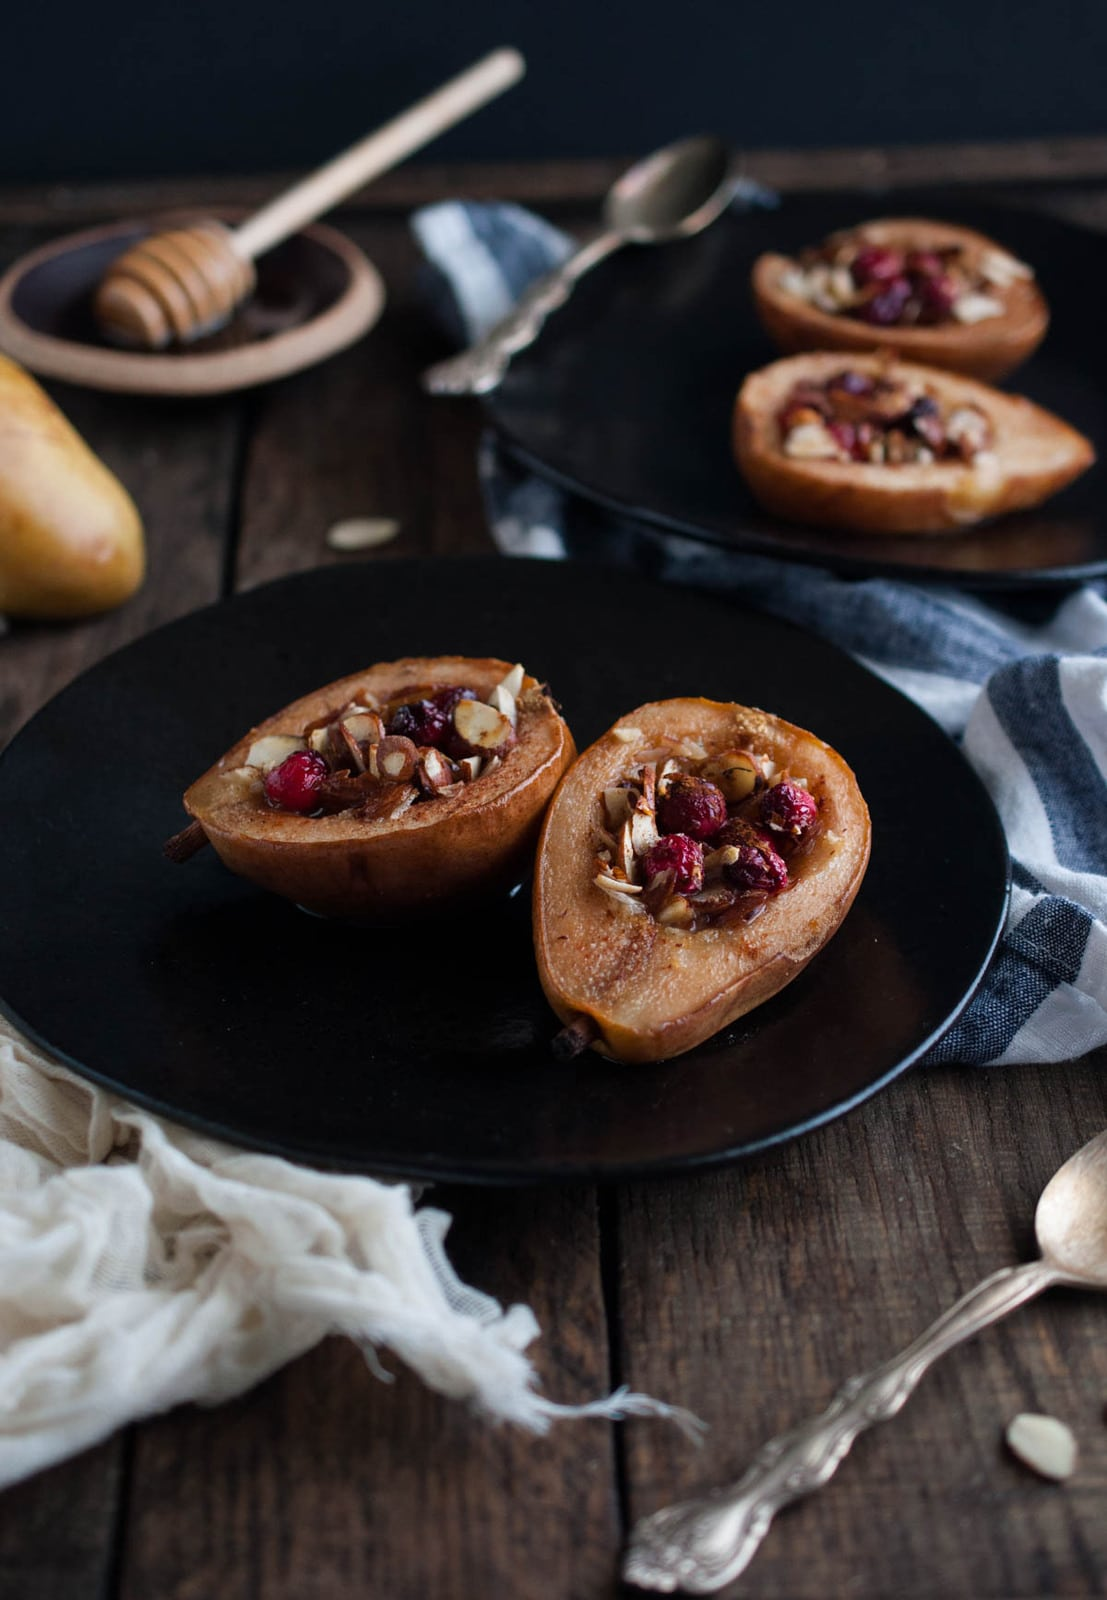 These baked pears with honey and almonds are the perfect healthy dessert for the holidays with cranberries and a nutty crunch all for 200 calories!